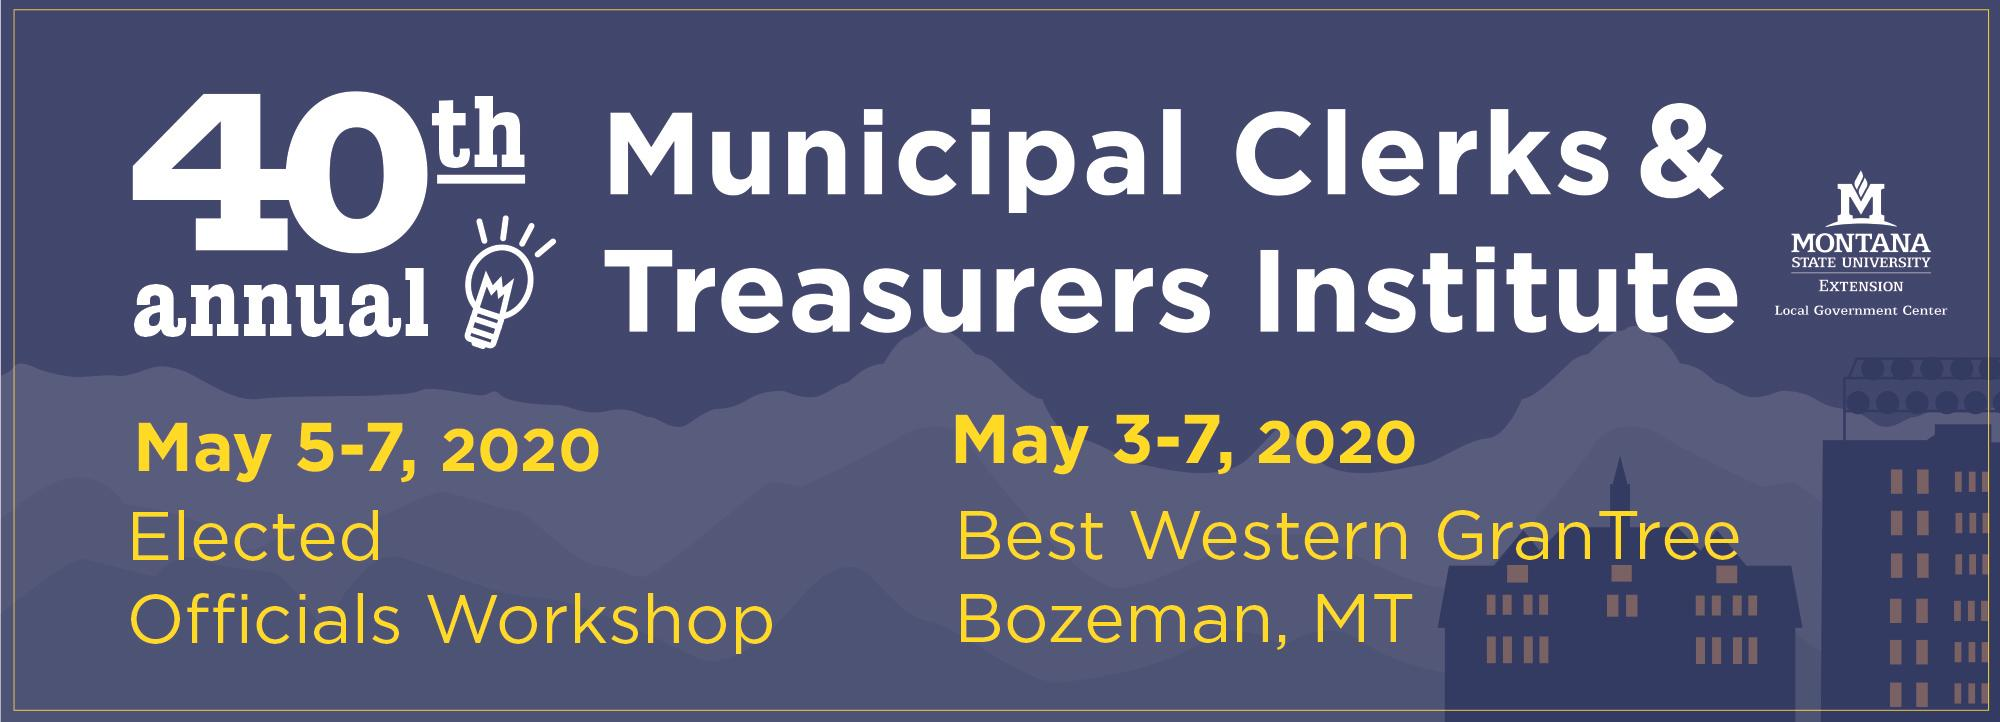 2020 Montana Municipal Institute for Clerks, Treasurers, and Elected Officials in Bozeman, MT May 3-7, 2020